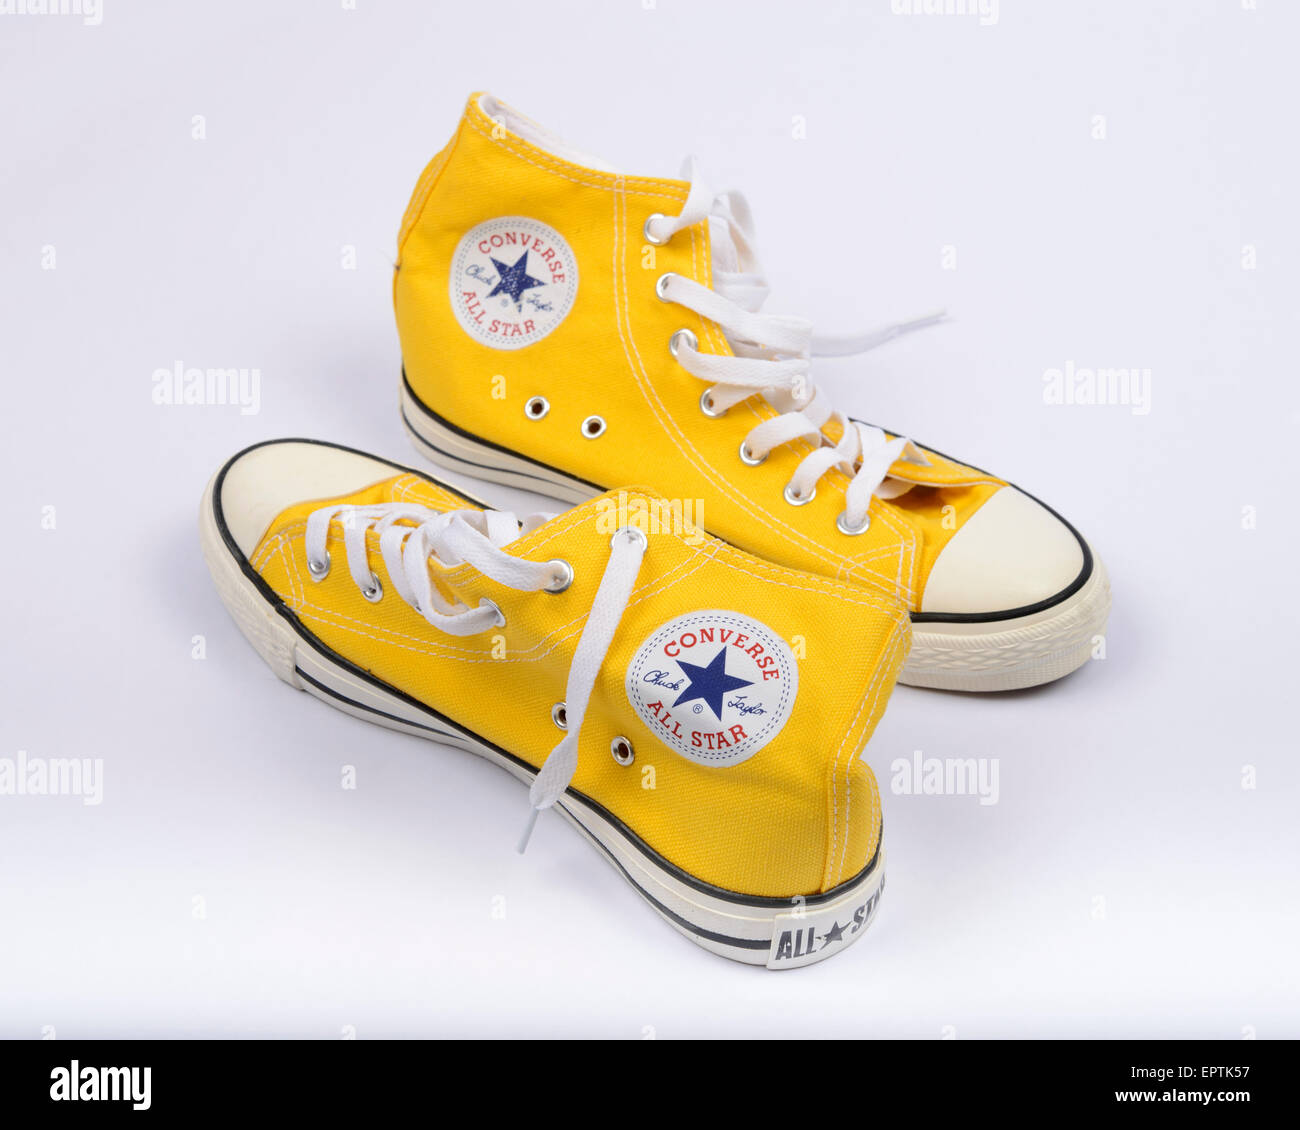 b1733c5ca6ac Converse Shoes Stock Photos   Converse Shoes Stock Images - Alamy